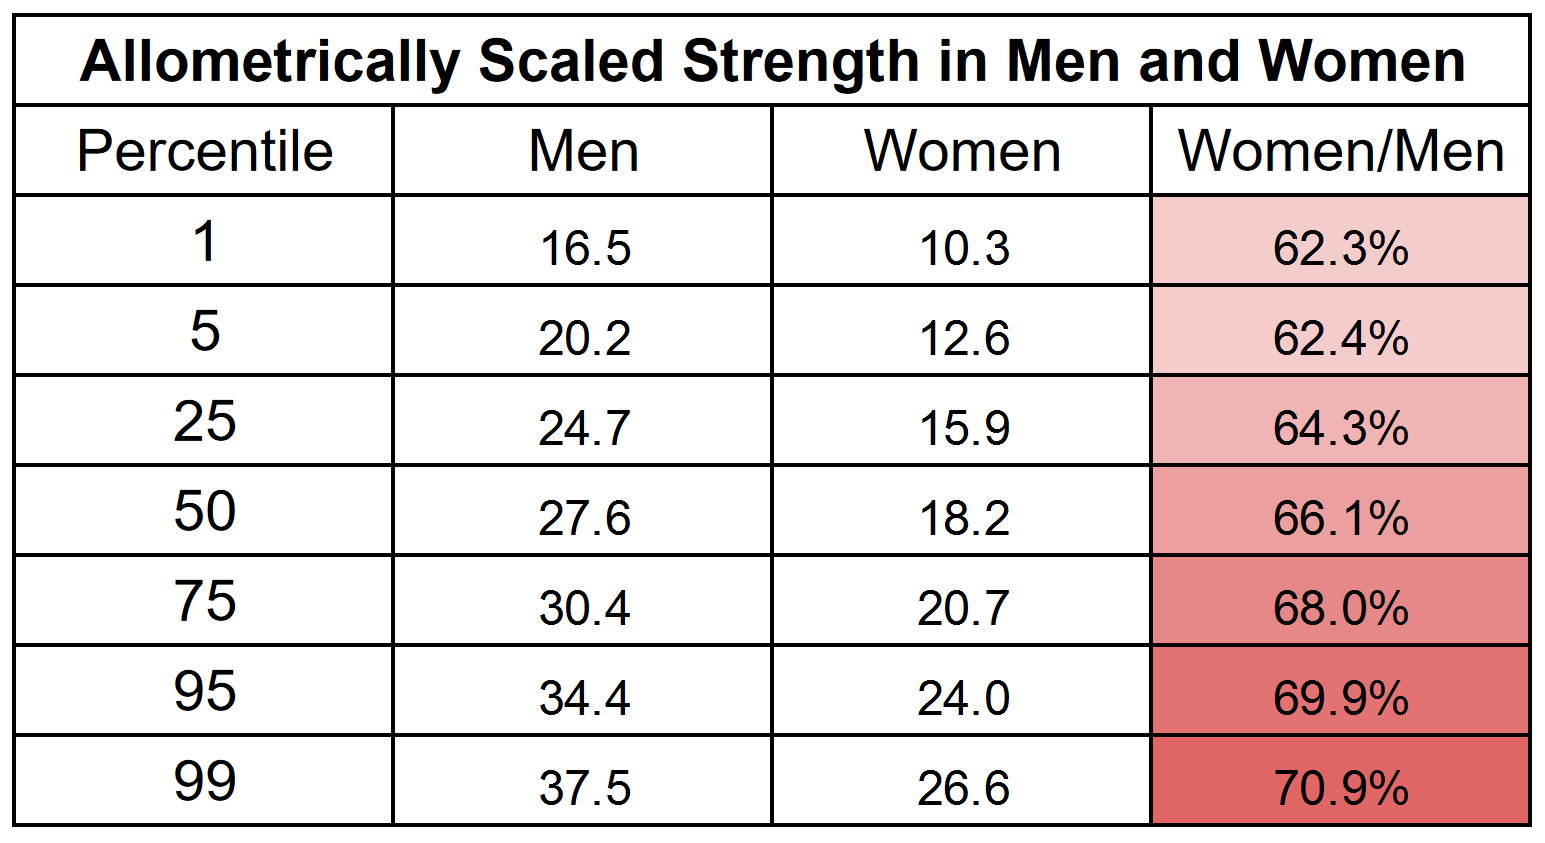 allometrically scaled strength in men and women